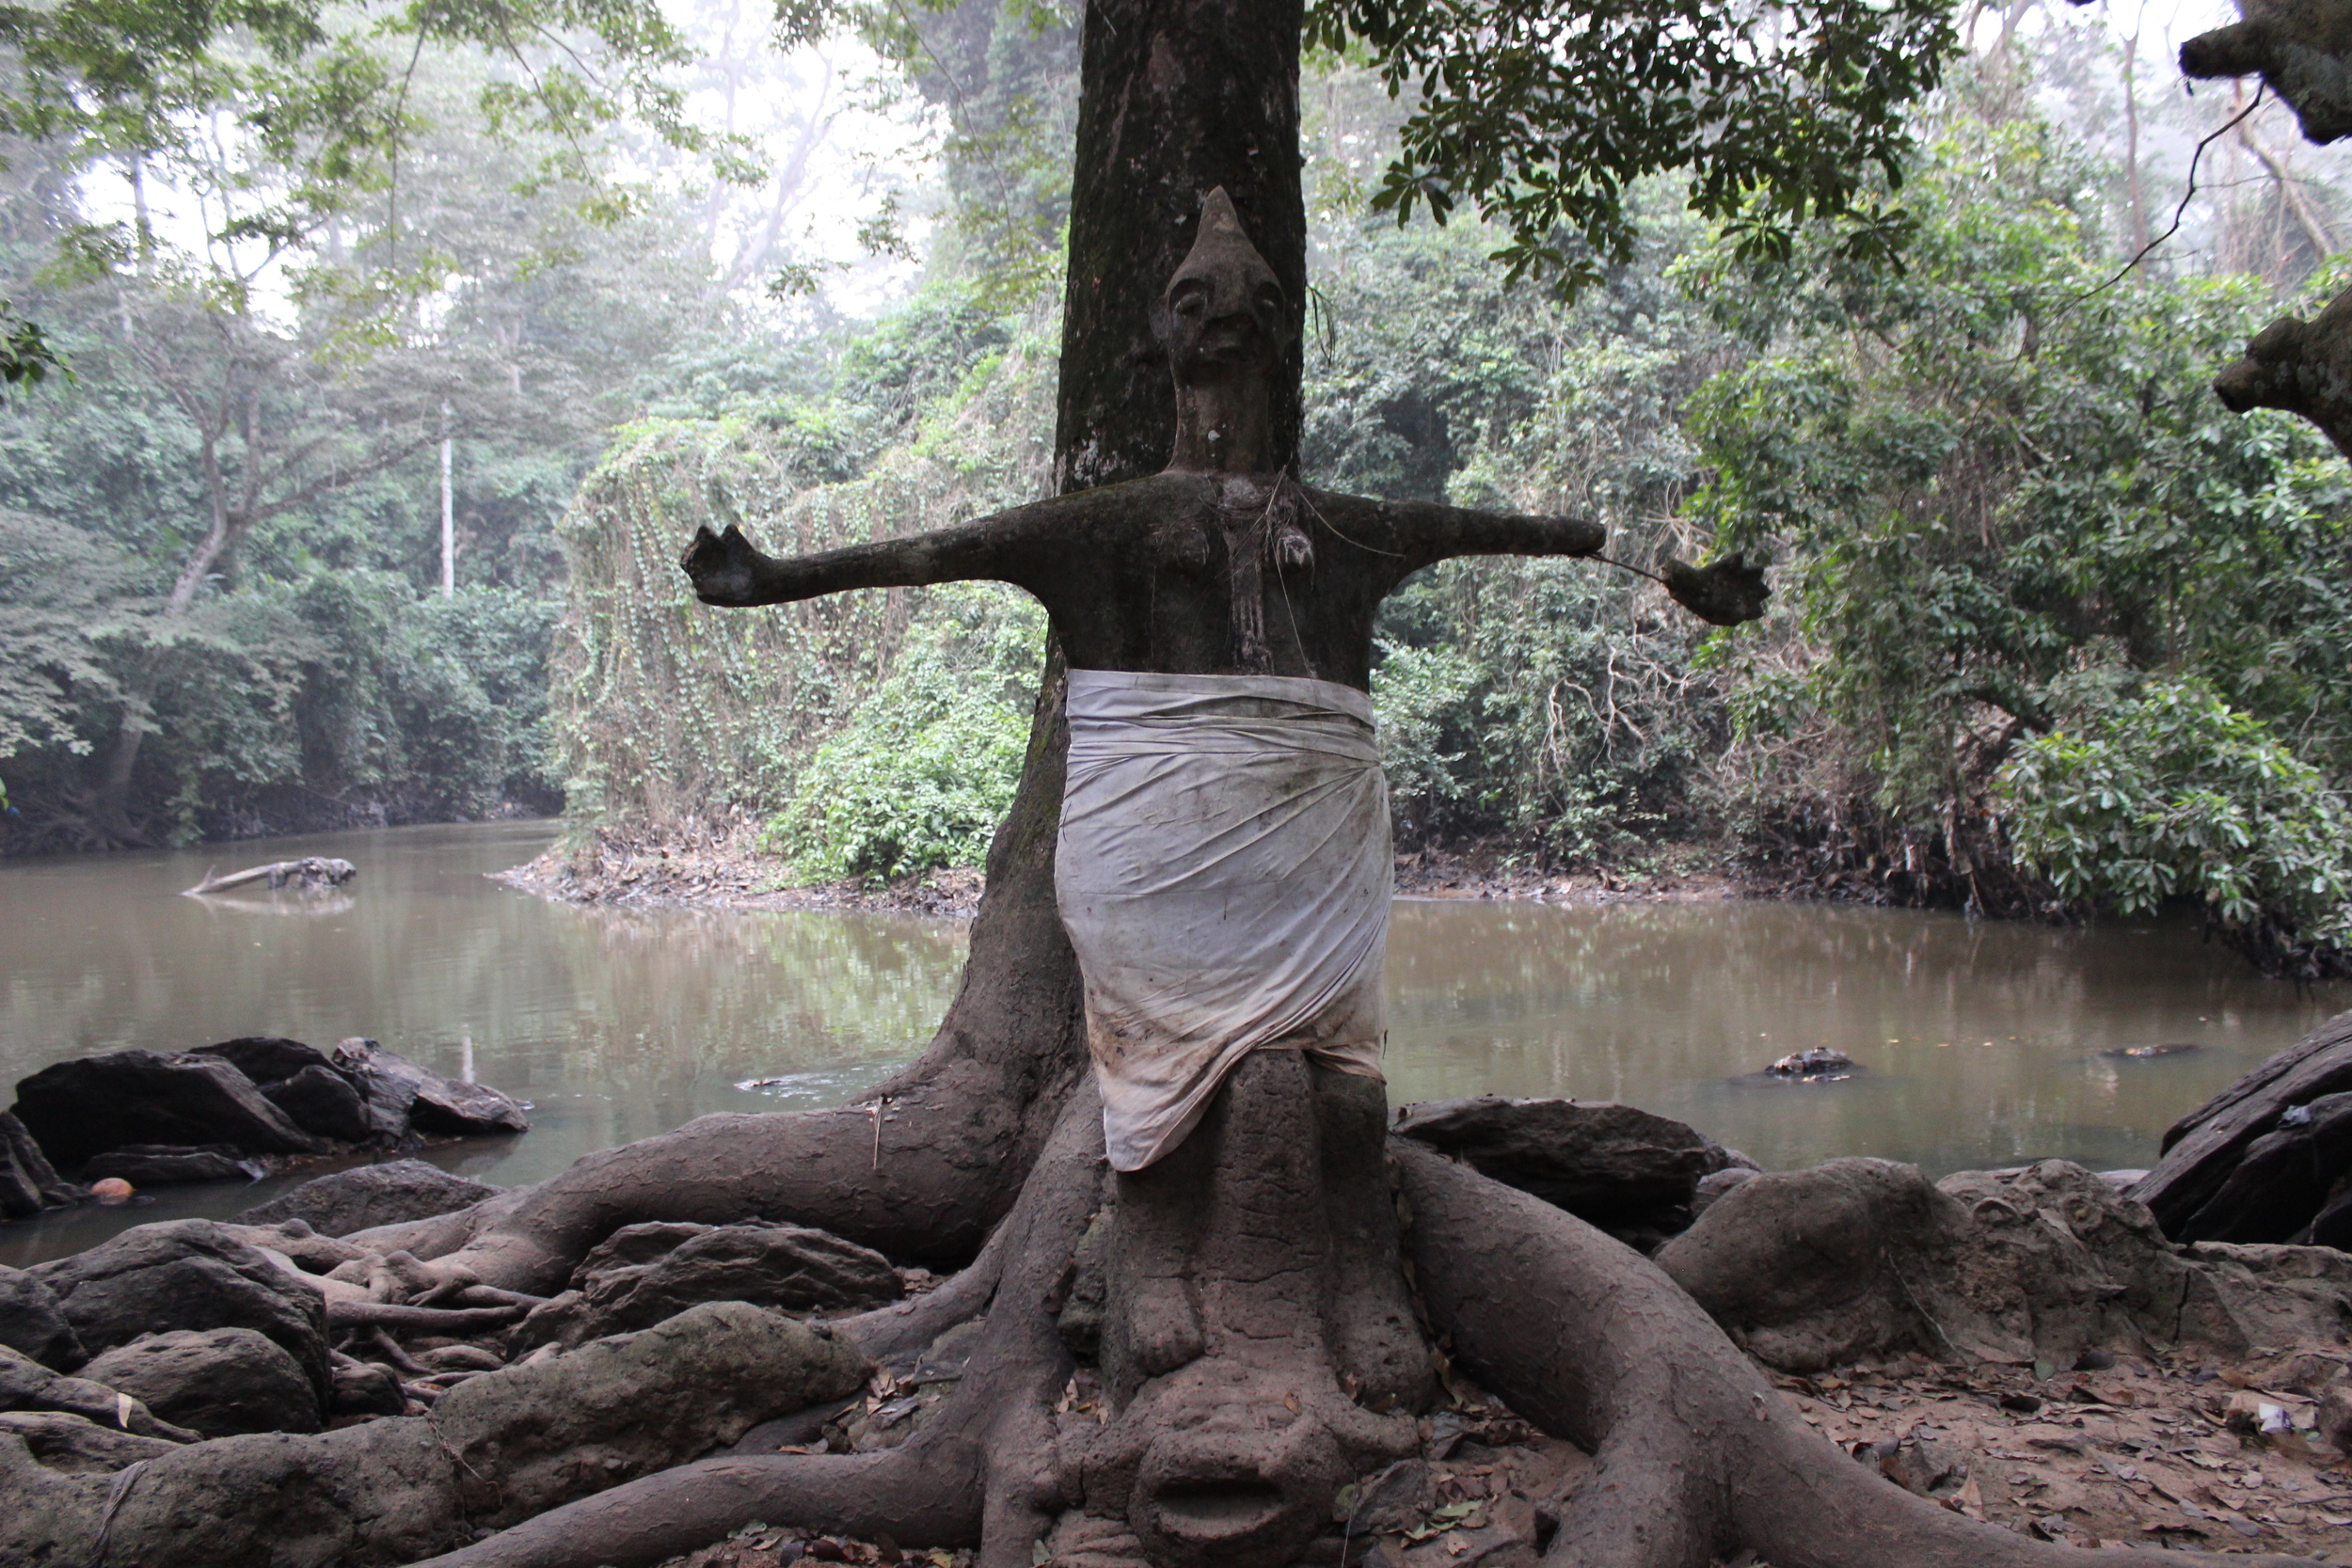 The concrete-statue of Oshun Oshogbo, built by artist Shaka at the place where Oshun was met by the Yoruba settlers. Dry season, 2015.